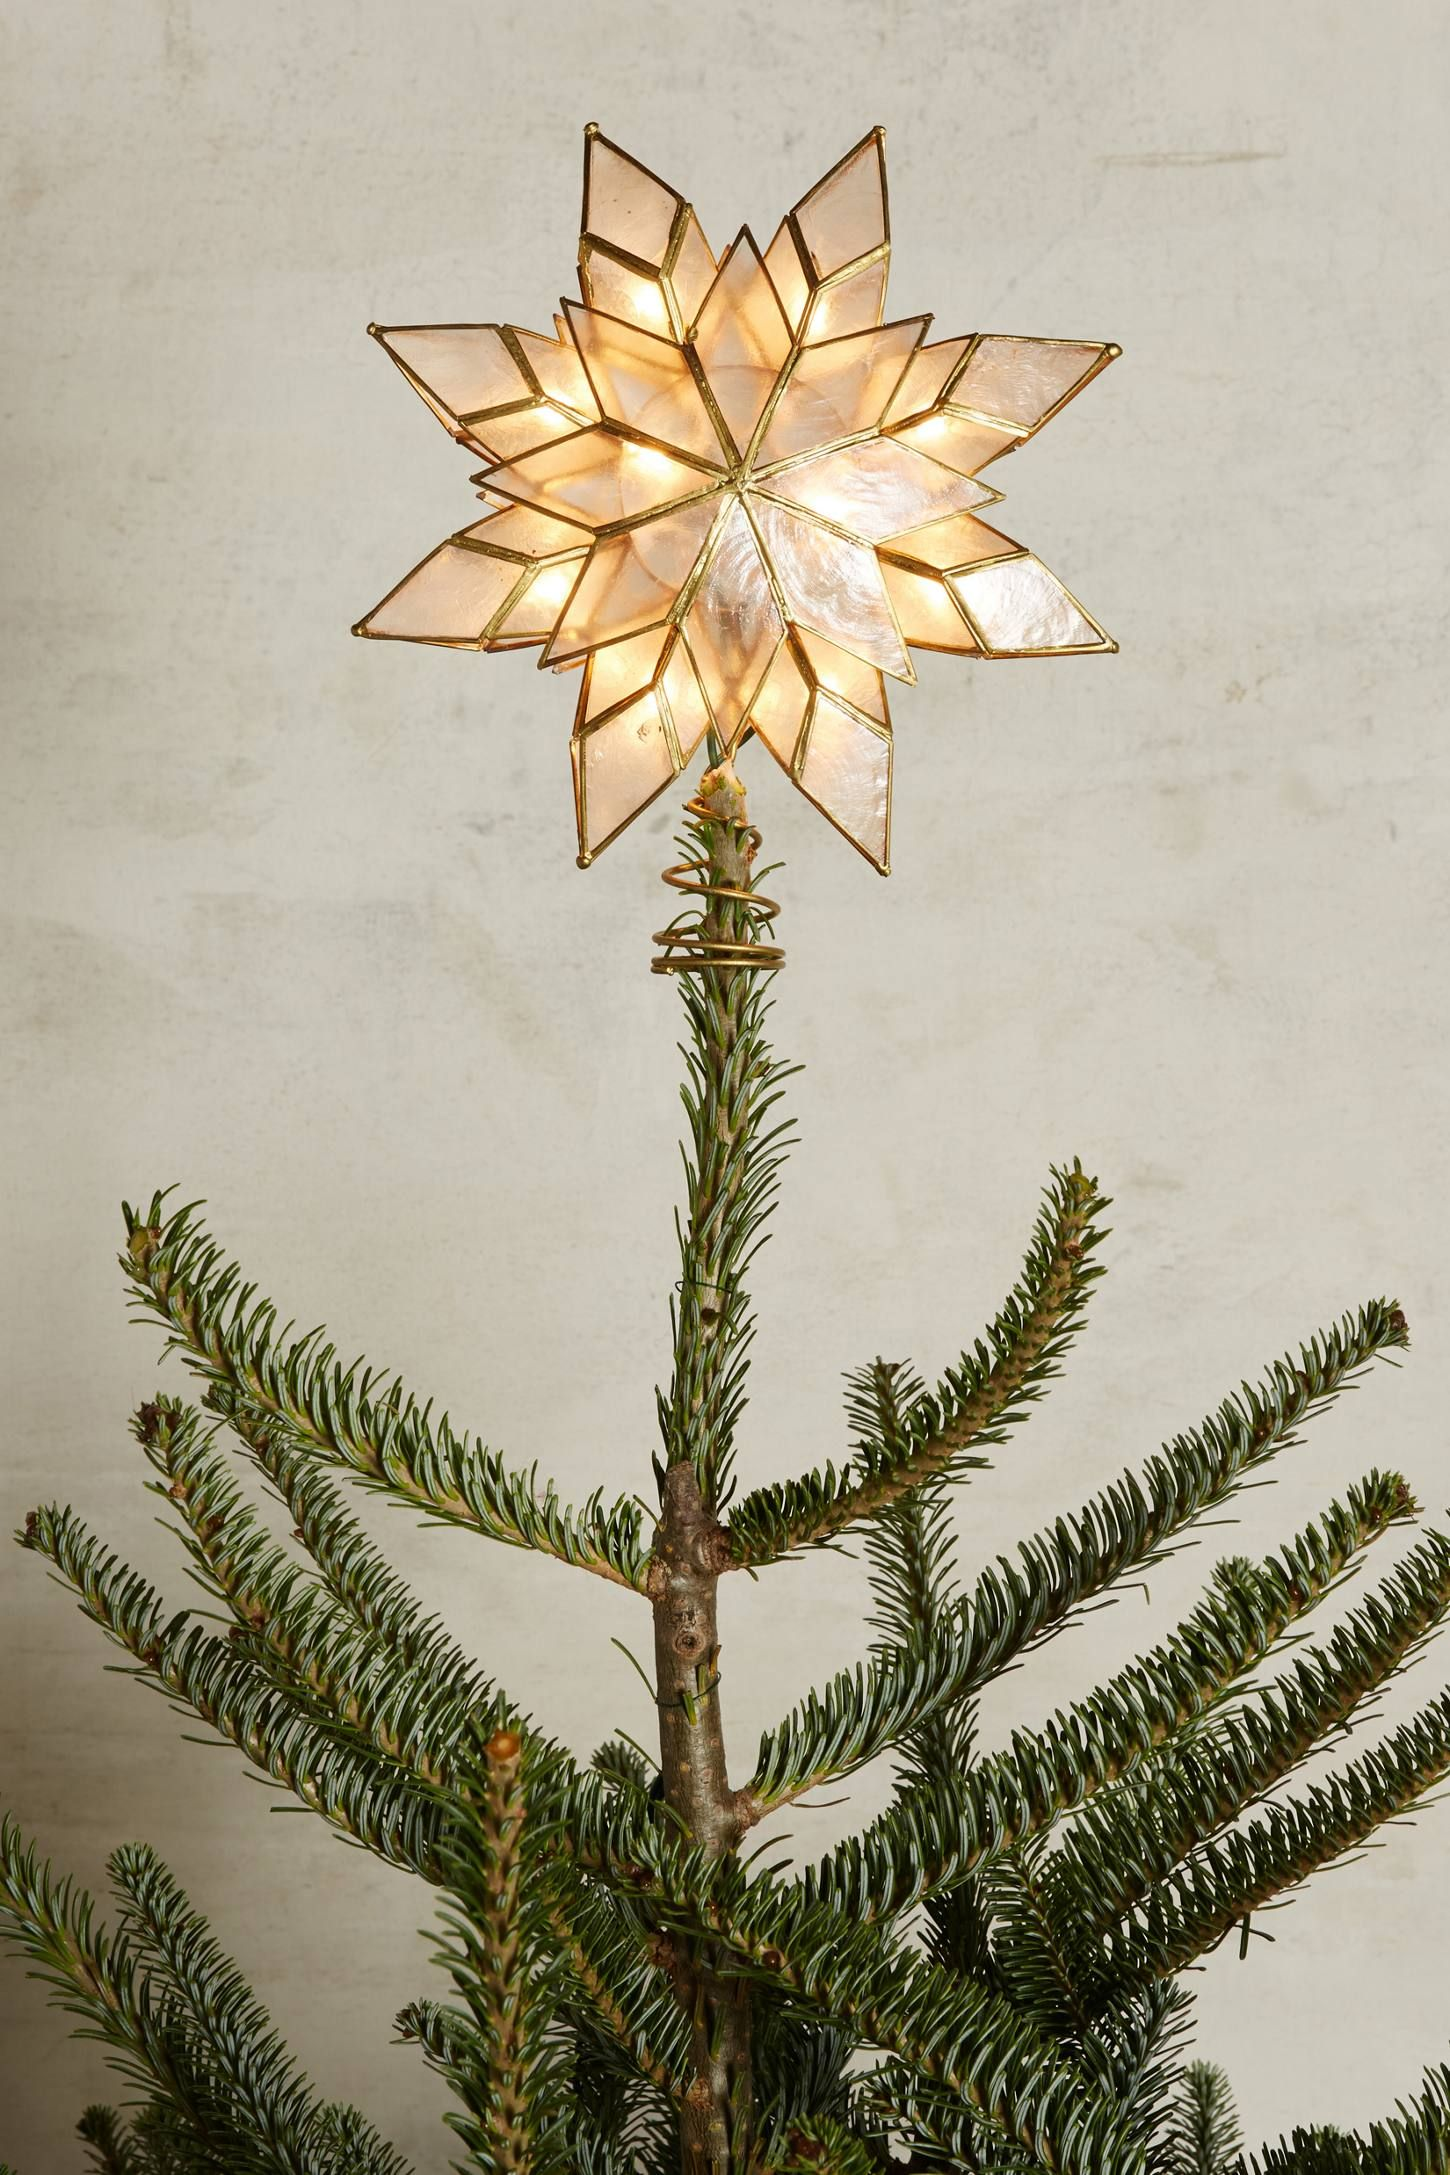 Best 25+ Christmas Tree Star Topper Ideas On Pinterest  Paper Ornaments,  Kids Make Christmas Ornaments And Sheet Music Ornaments Diy